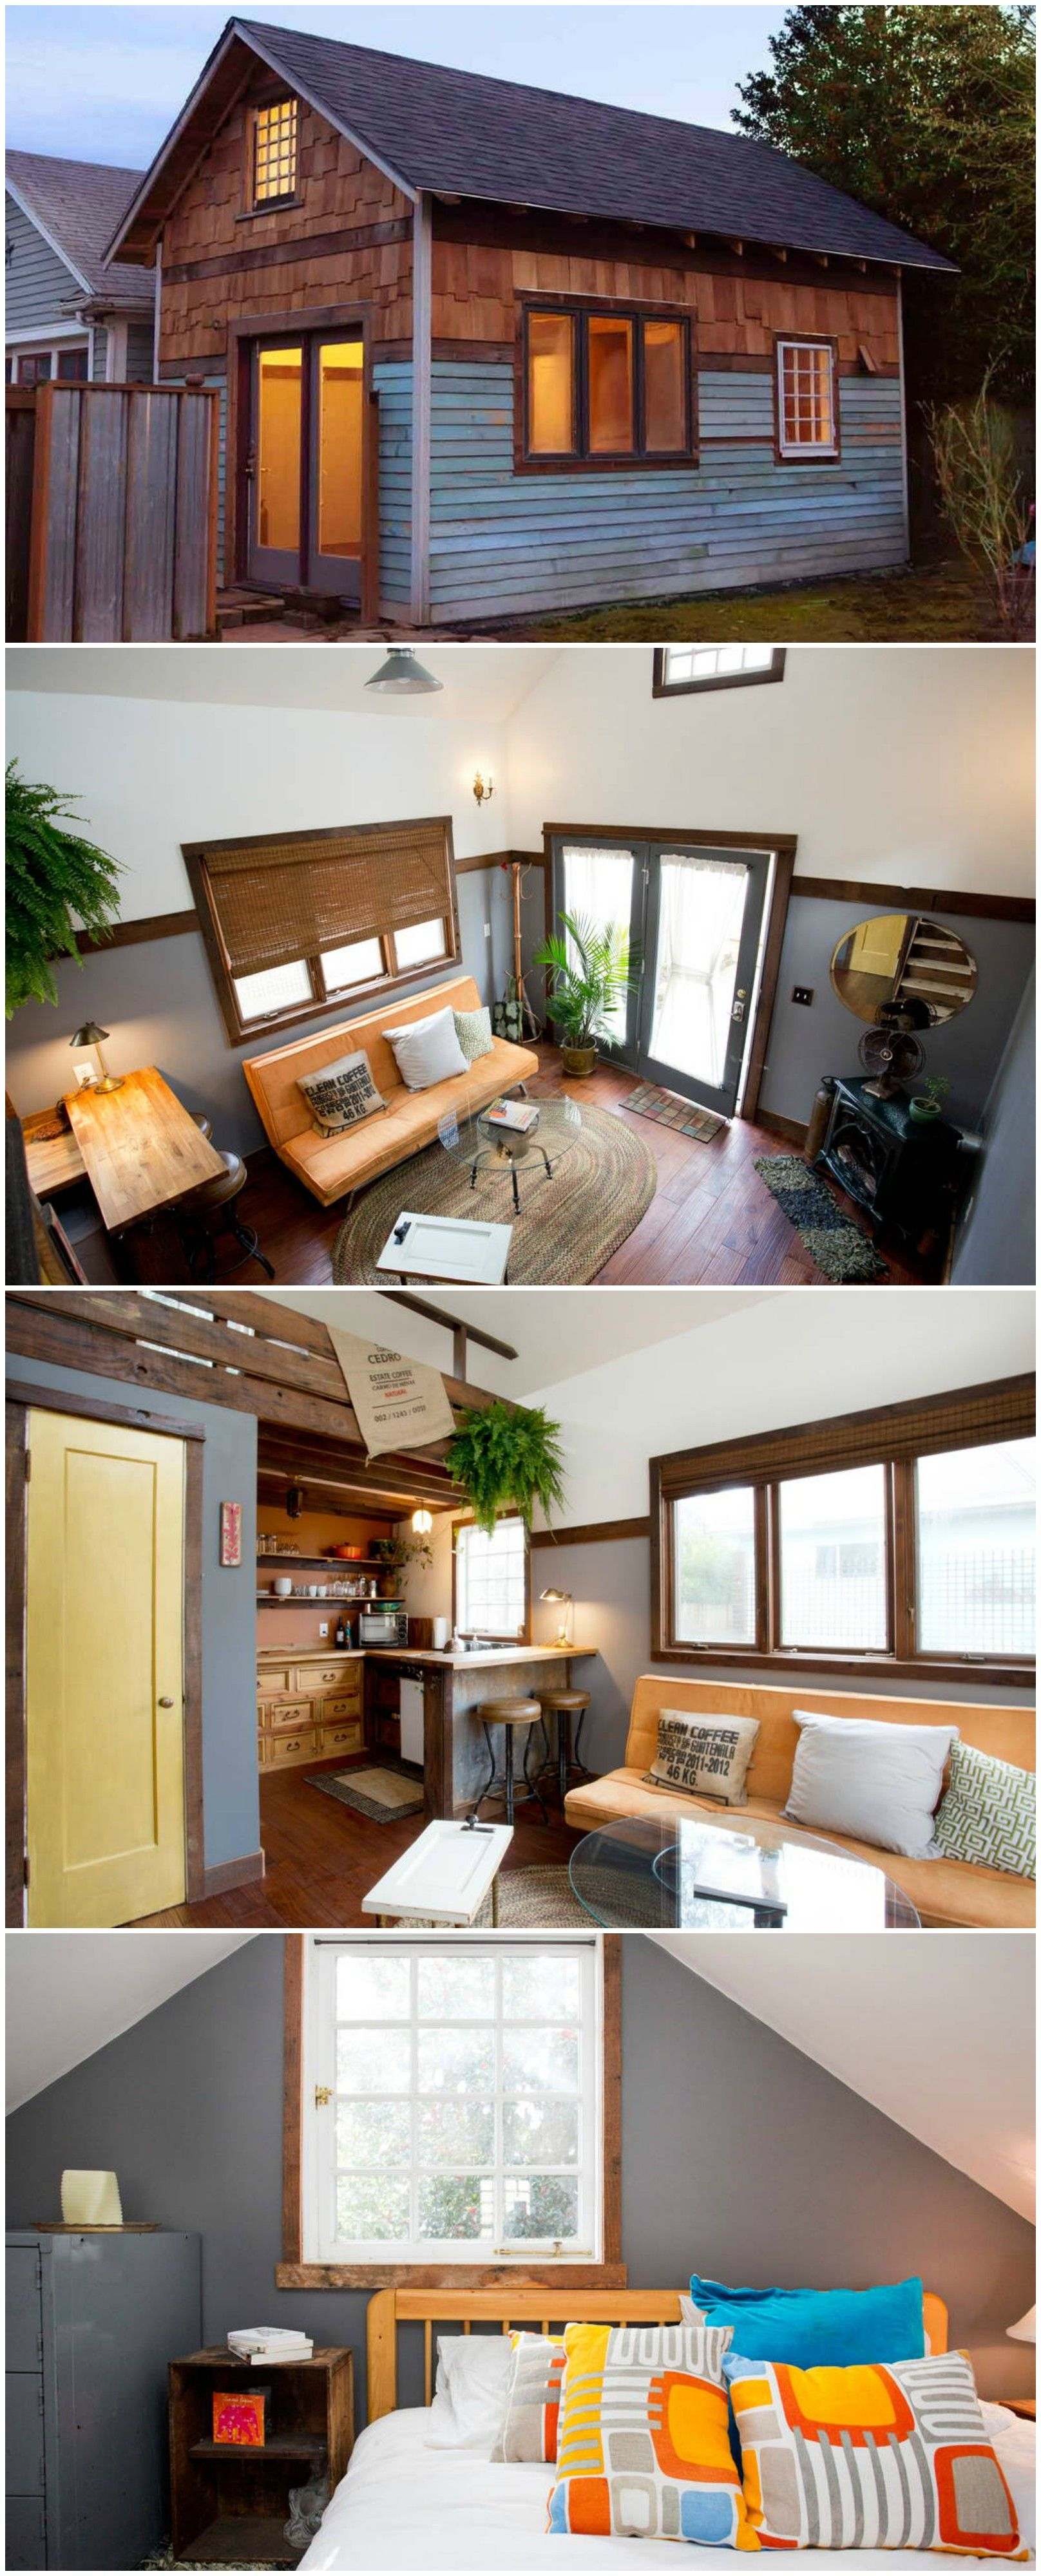 The Rustic Modern Is A Lovely Tiny House In Portland